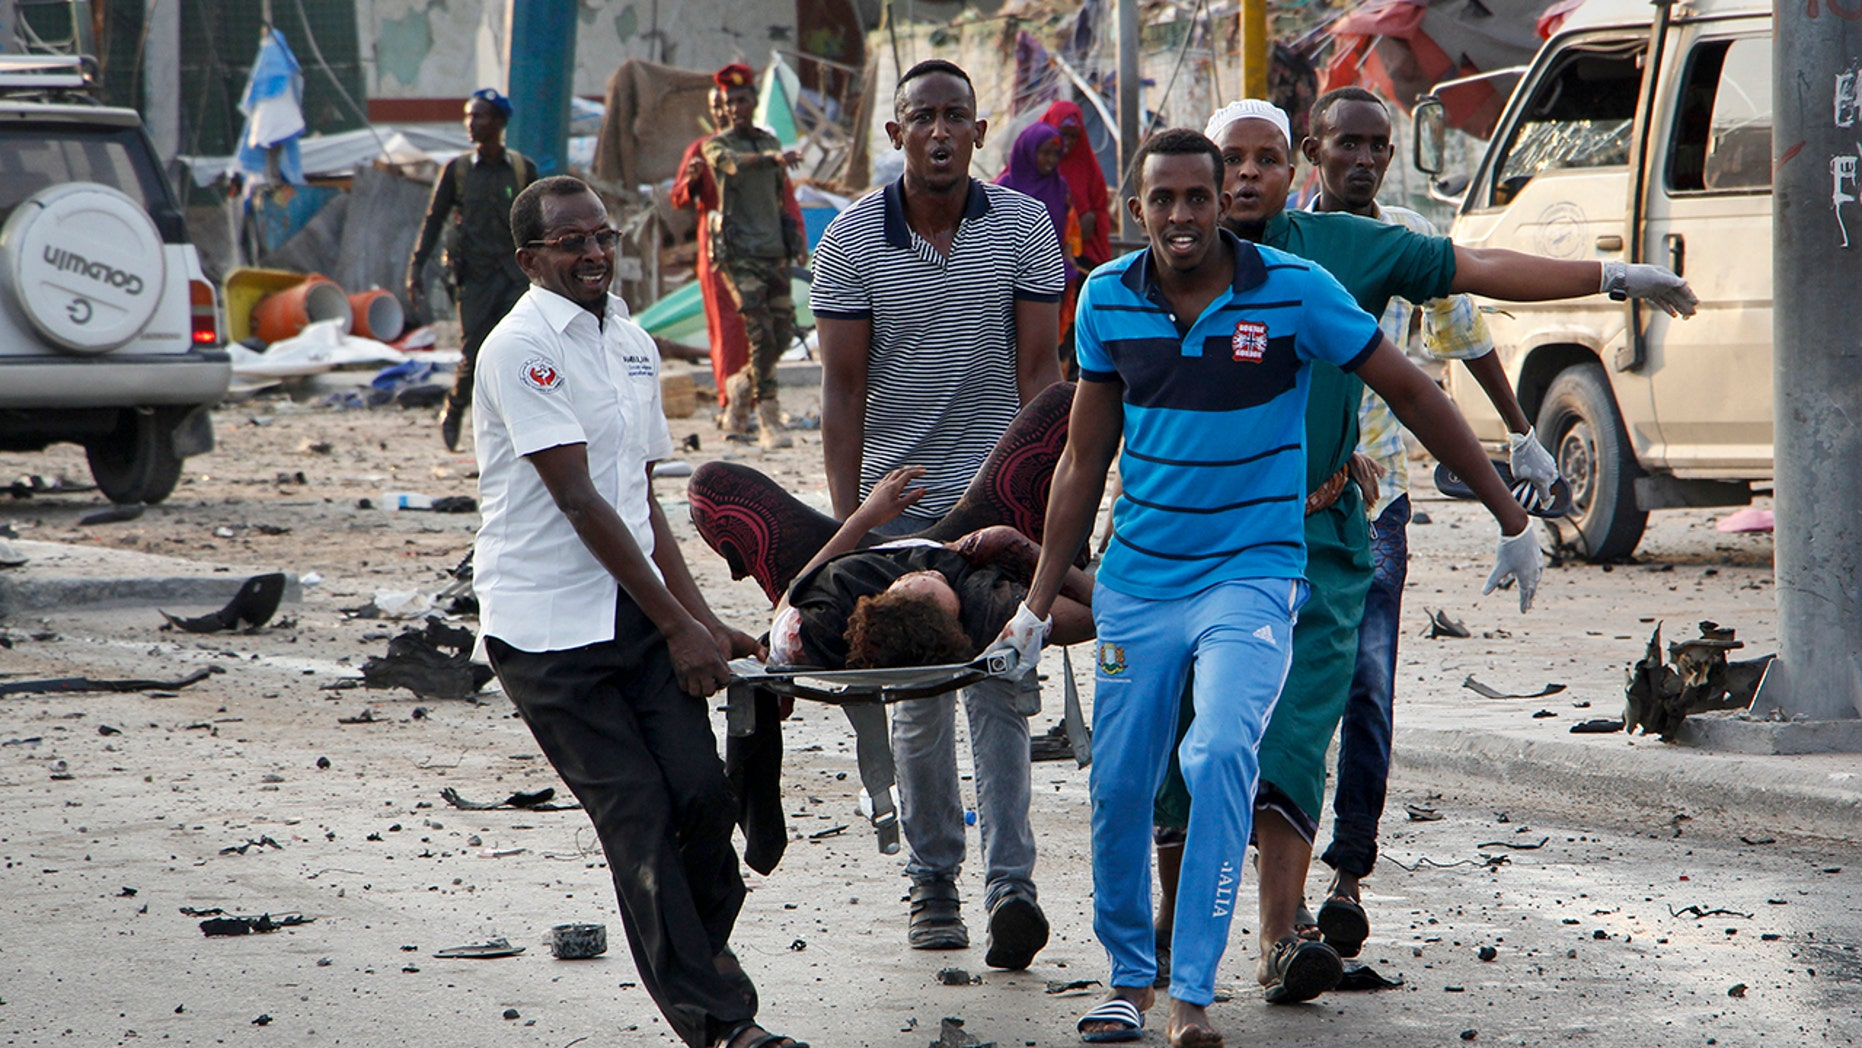 Triple vehicle bombings in Mogadishu kill at least 18 people, police say